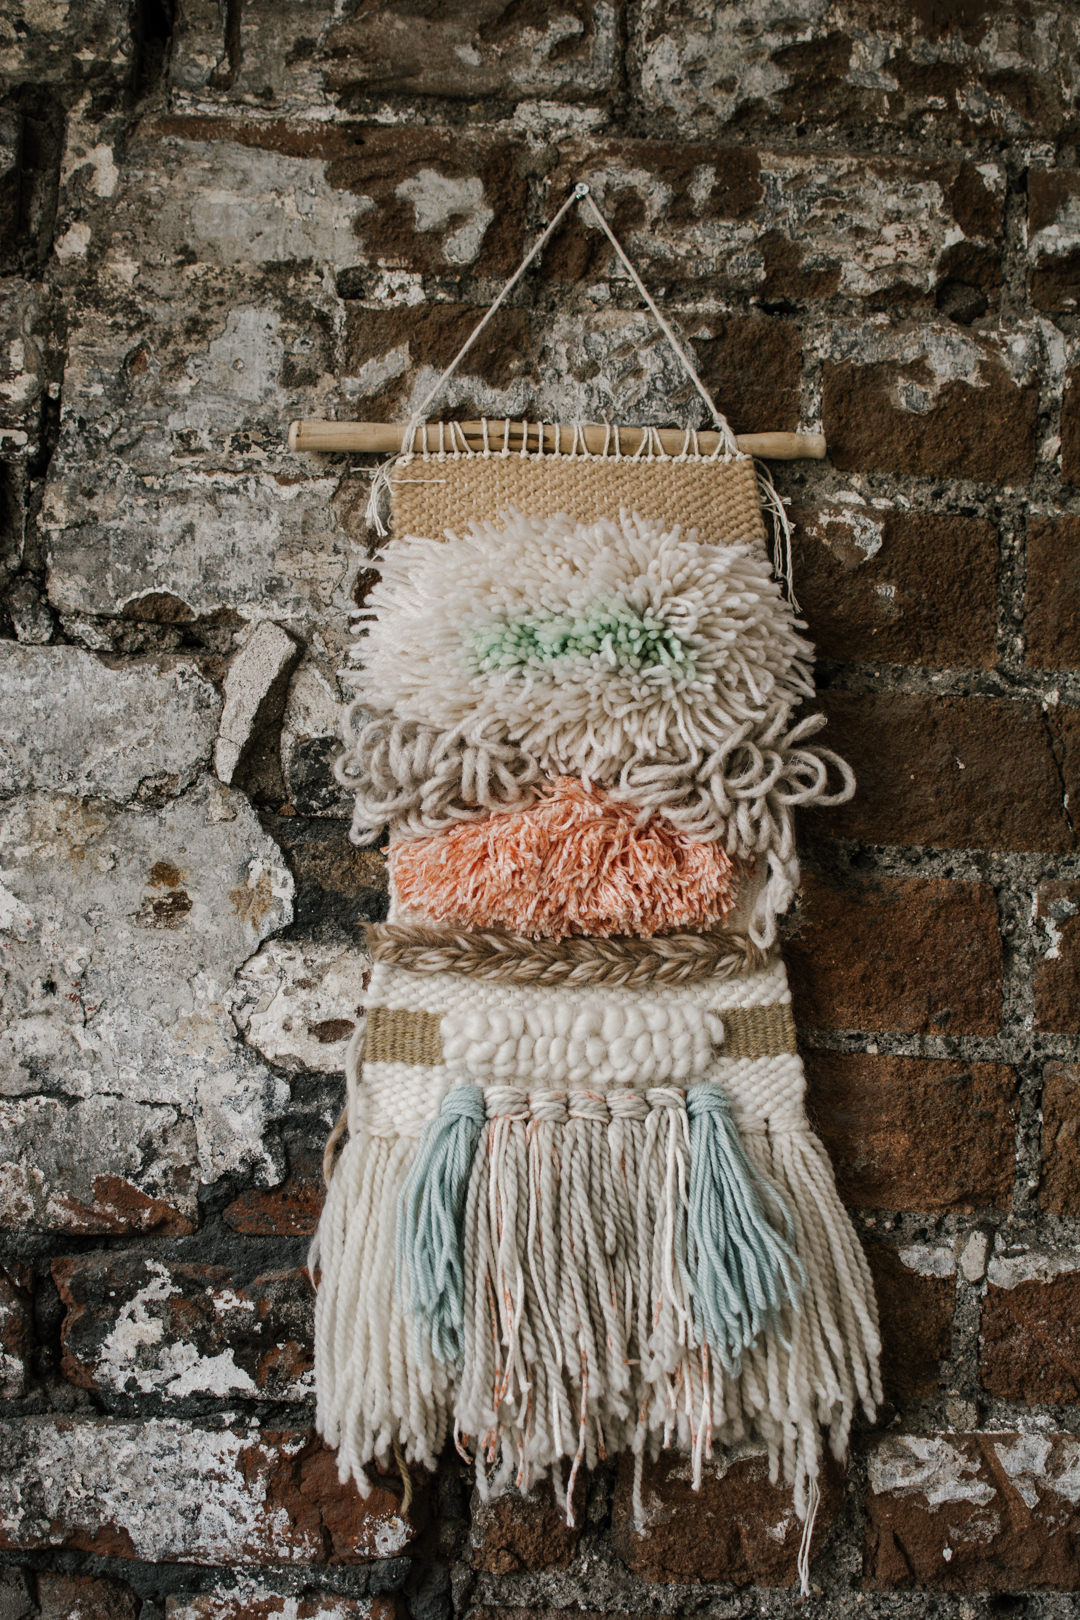 Modern Art and Craft Workshops and Classes in Bristol   Loom Weaving Workshop with Peas and Needles